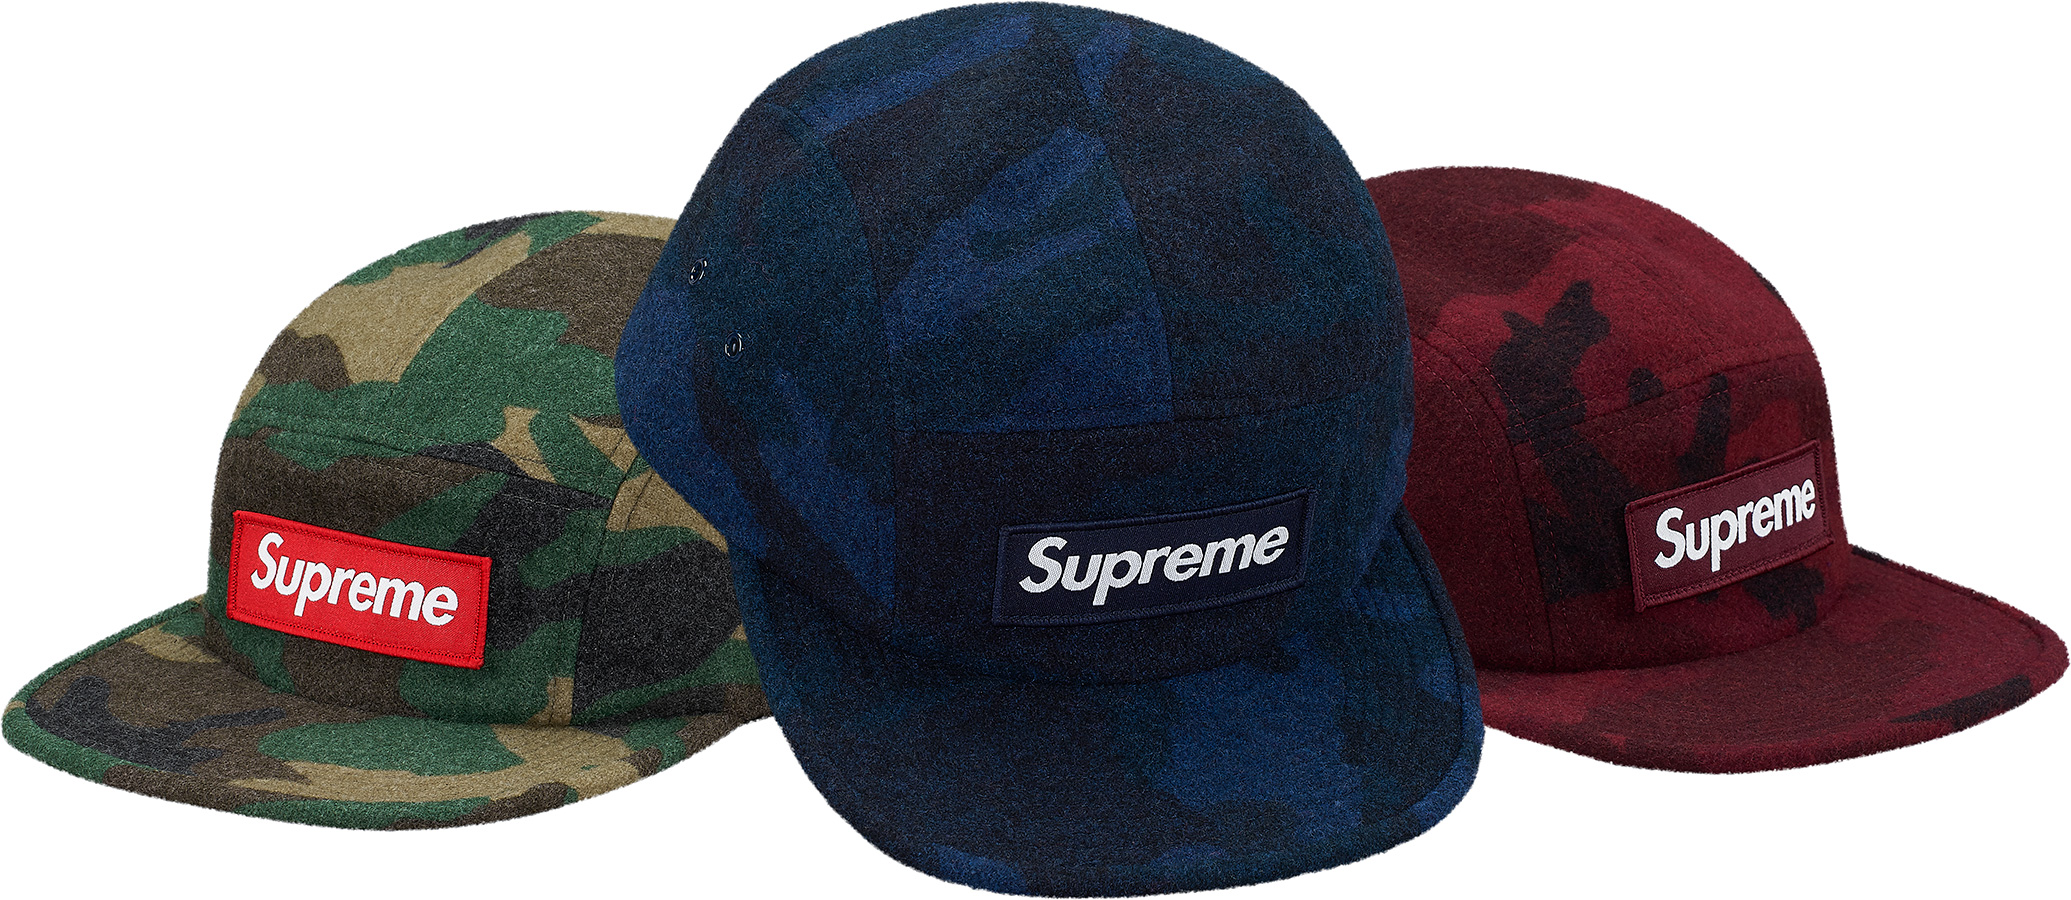 0b8dadd70ca16 ... discount supreme supreme camo wool camp cap navy box logo size one size  hats for sale